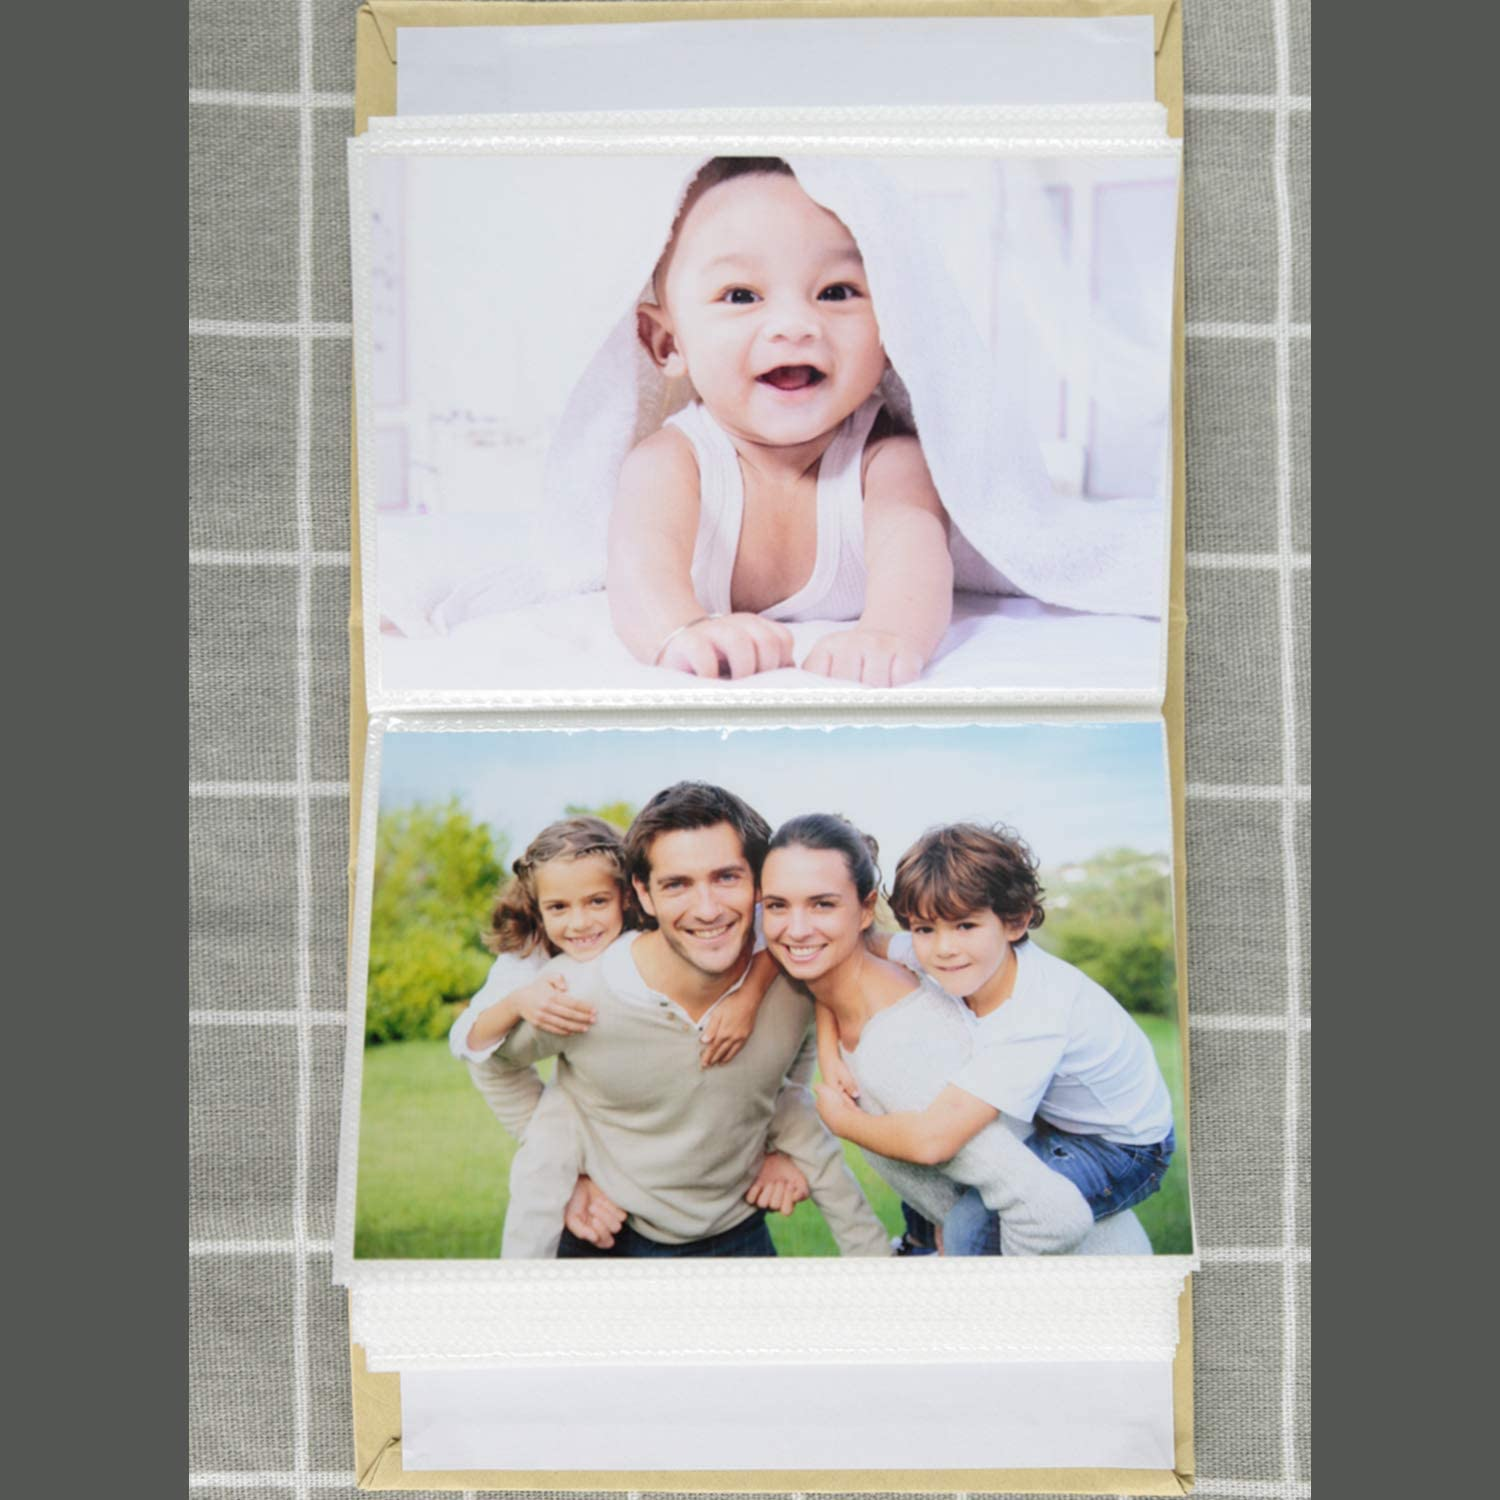 NLC Big Photo Album Baby Journal 5x3.5 inches,200 Photos Childrens Pictures Album,Family Photo Album,Wood